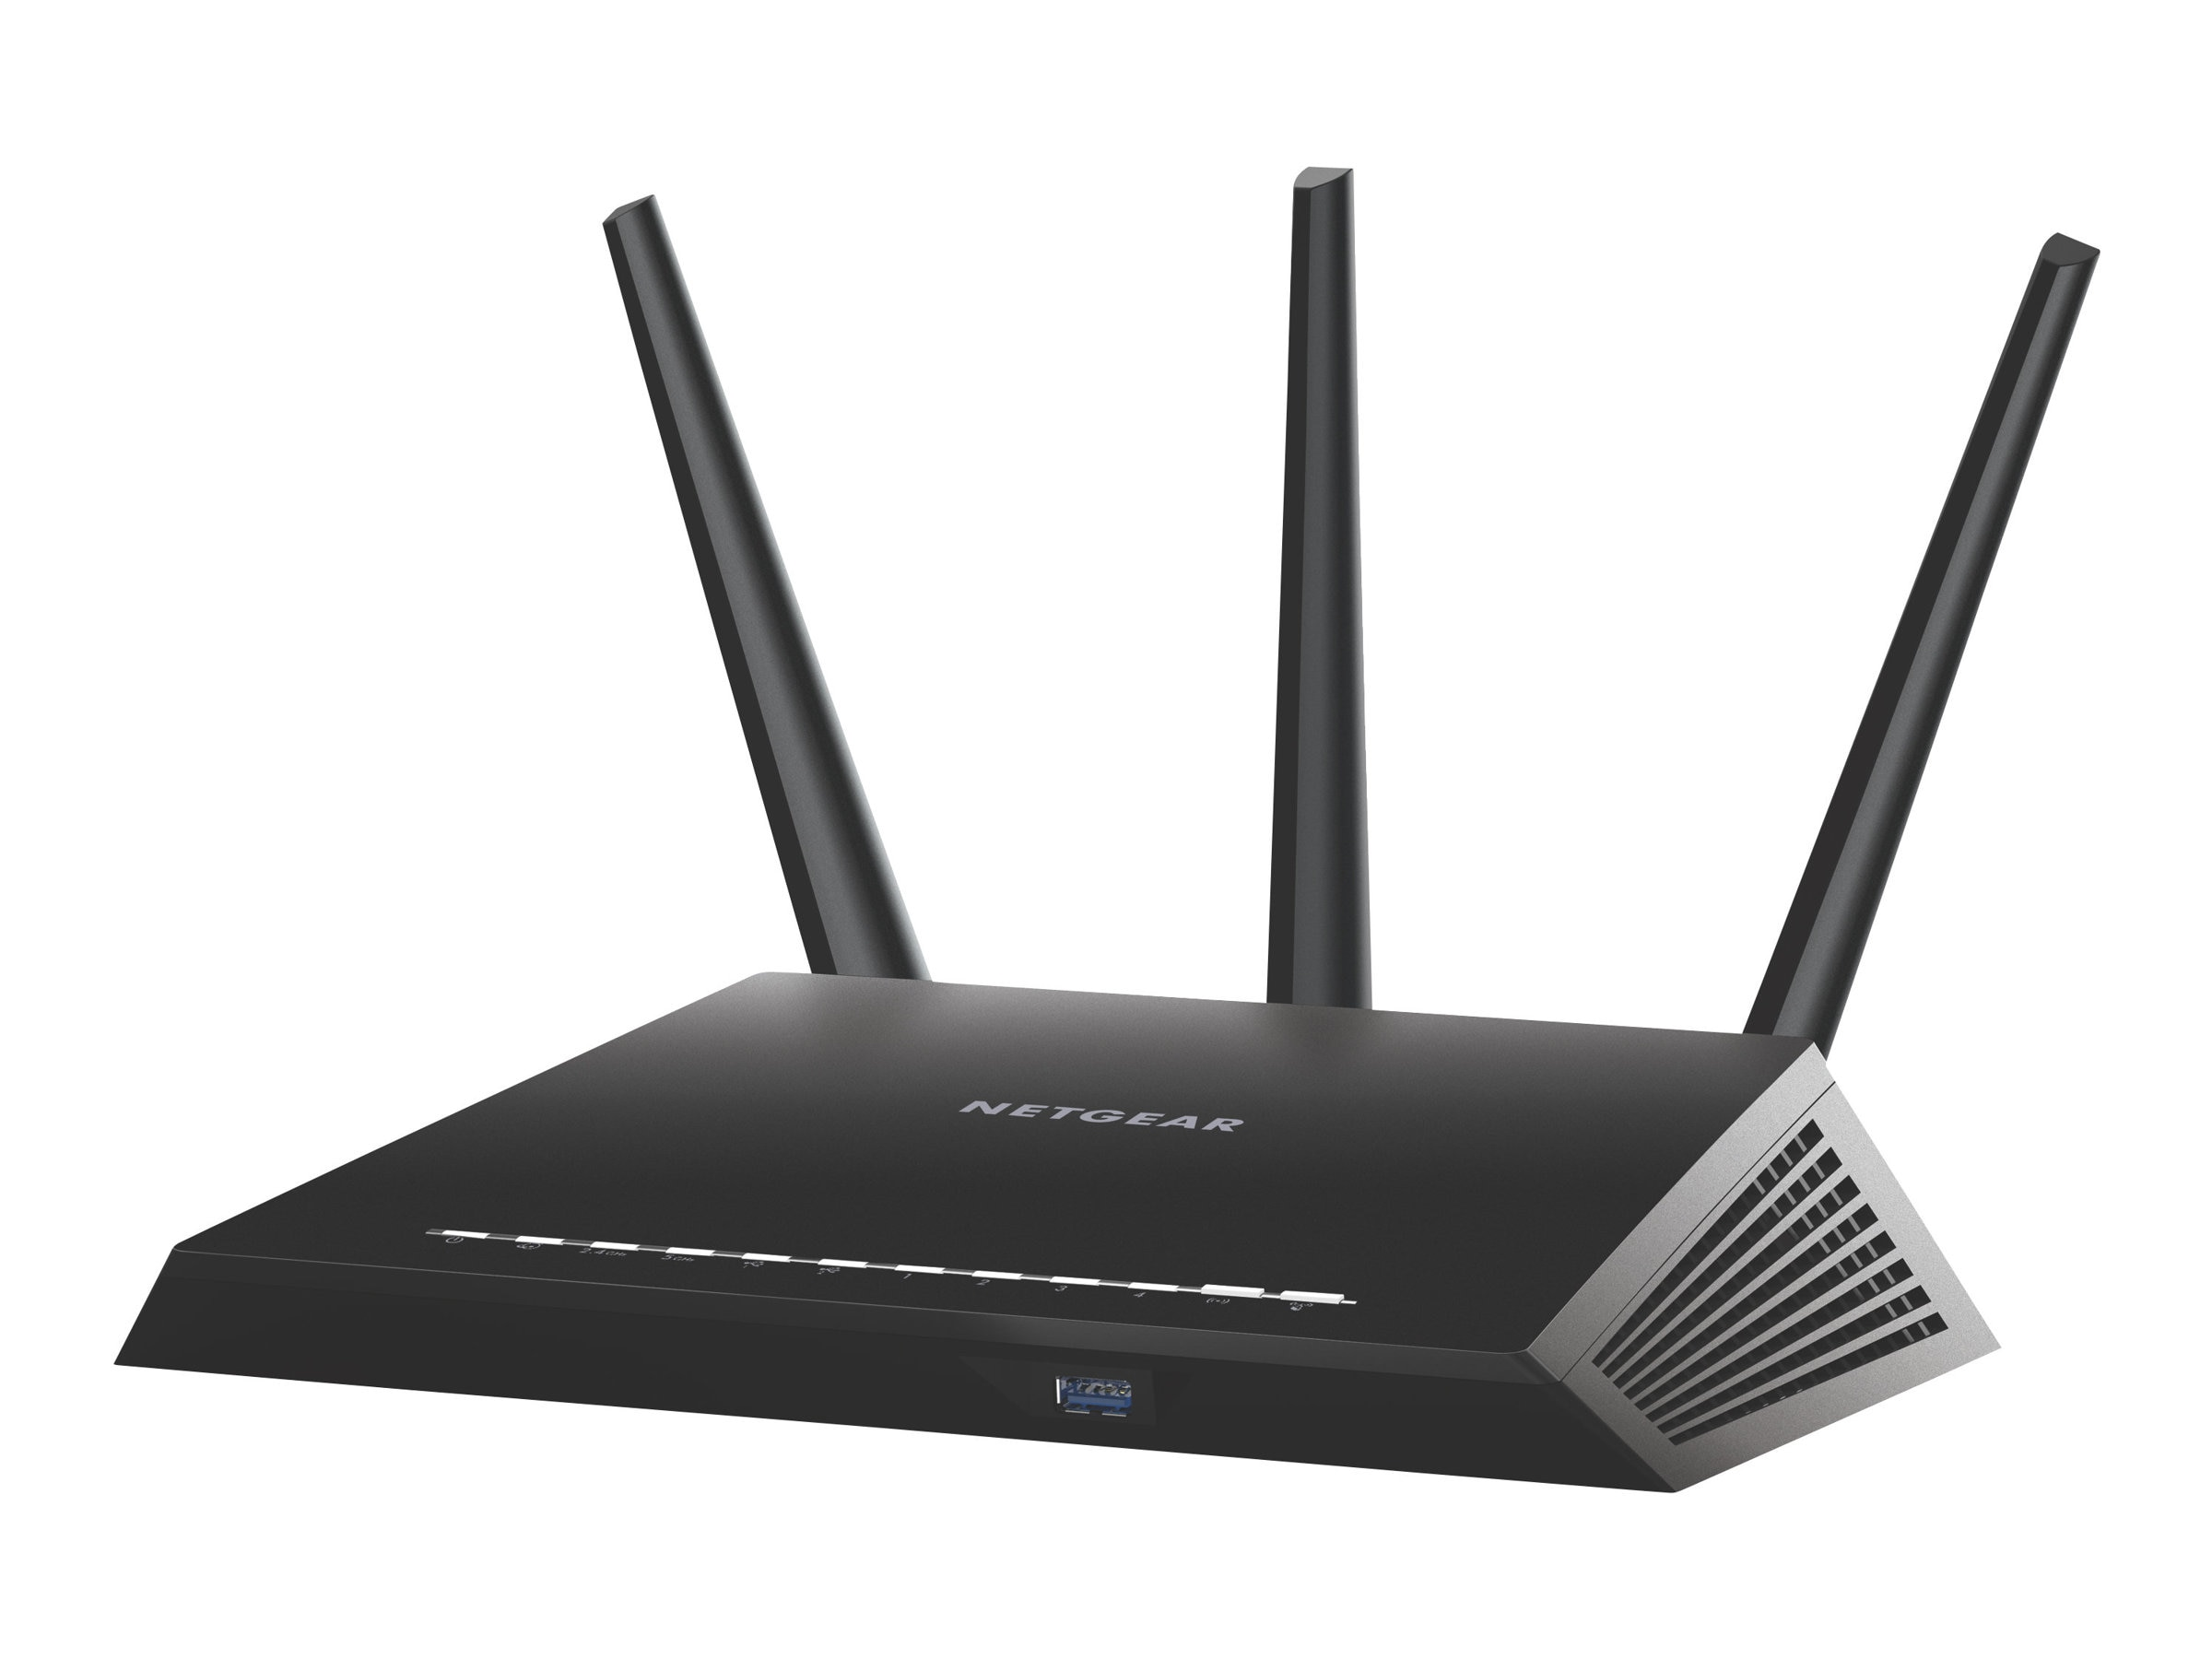 Netgear Nighthawk AC1900 Smart Wireless Router Dual GB, R7000-100PAS, 16327930, Wireless Routers